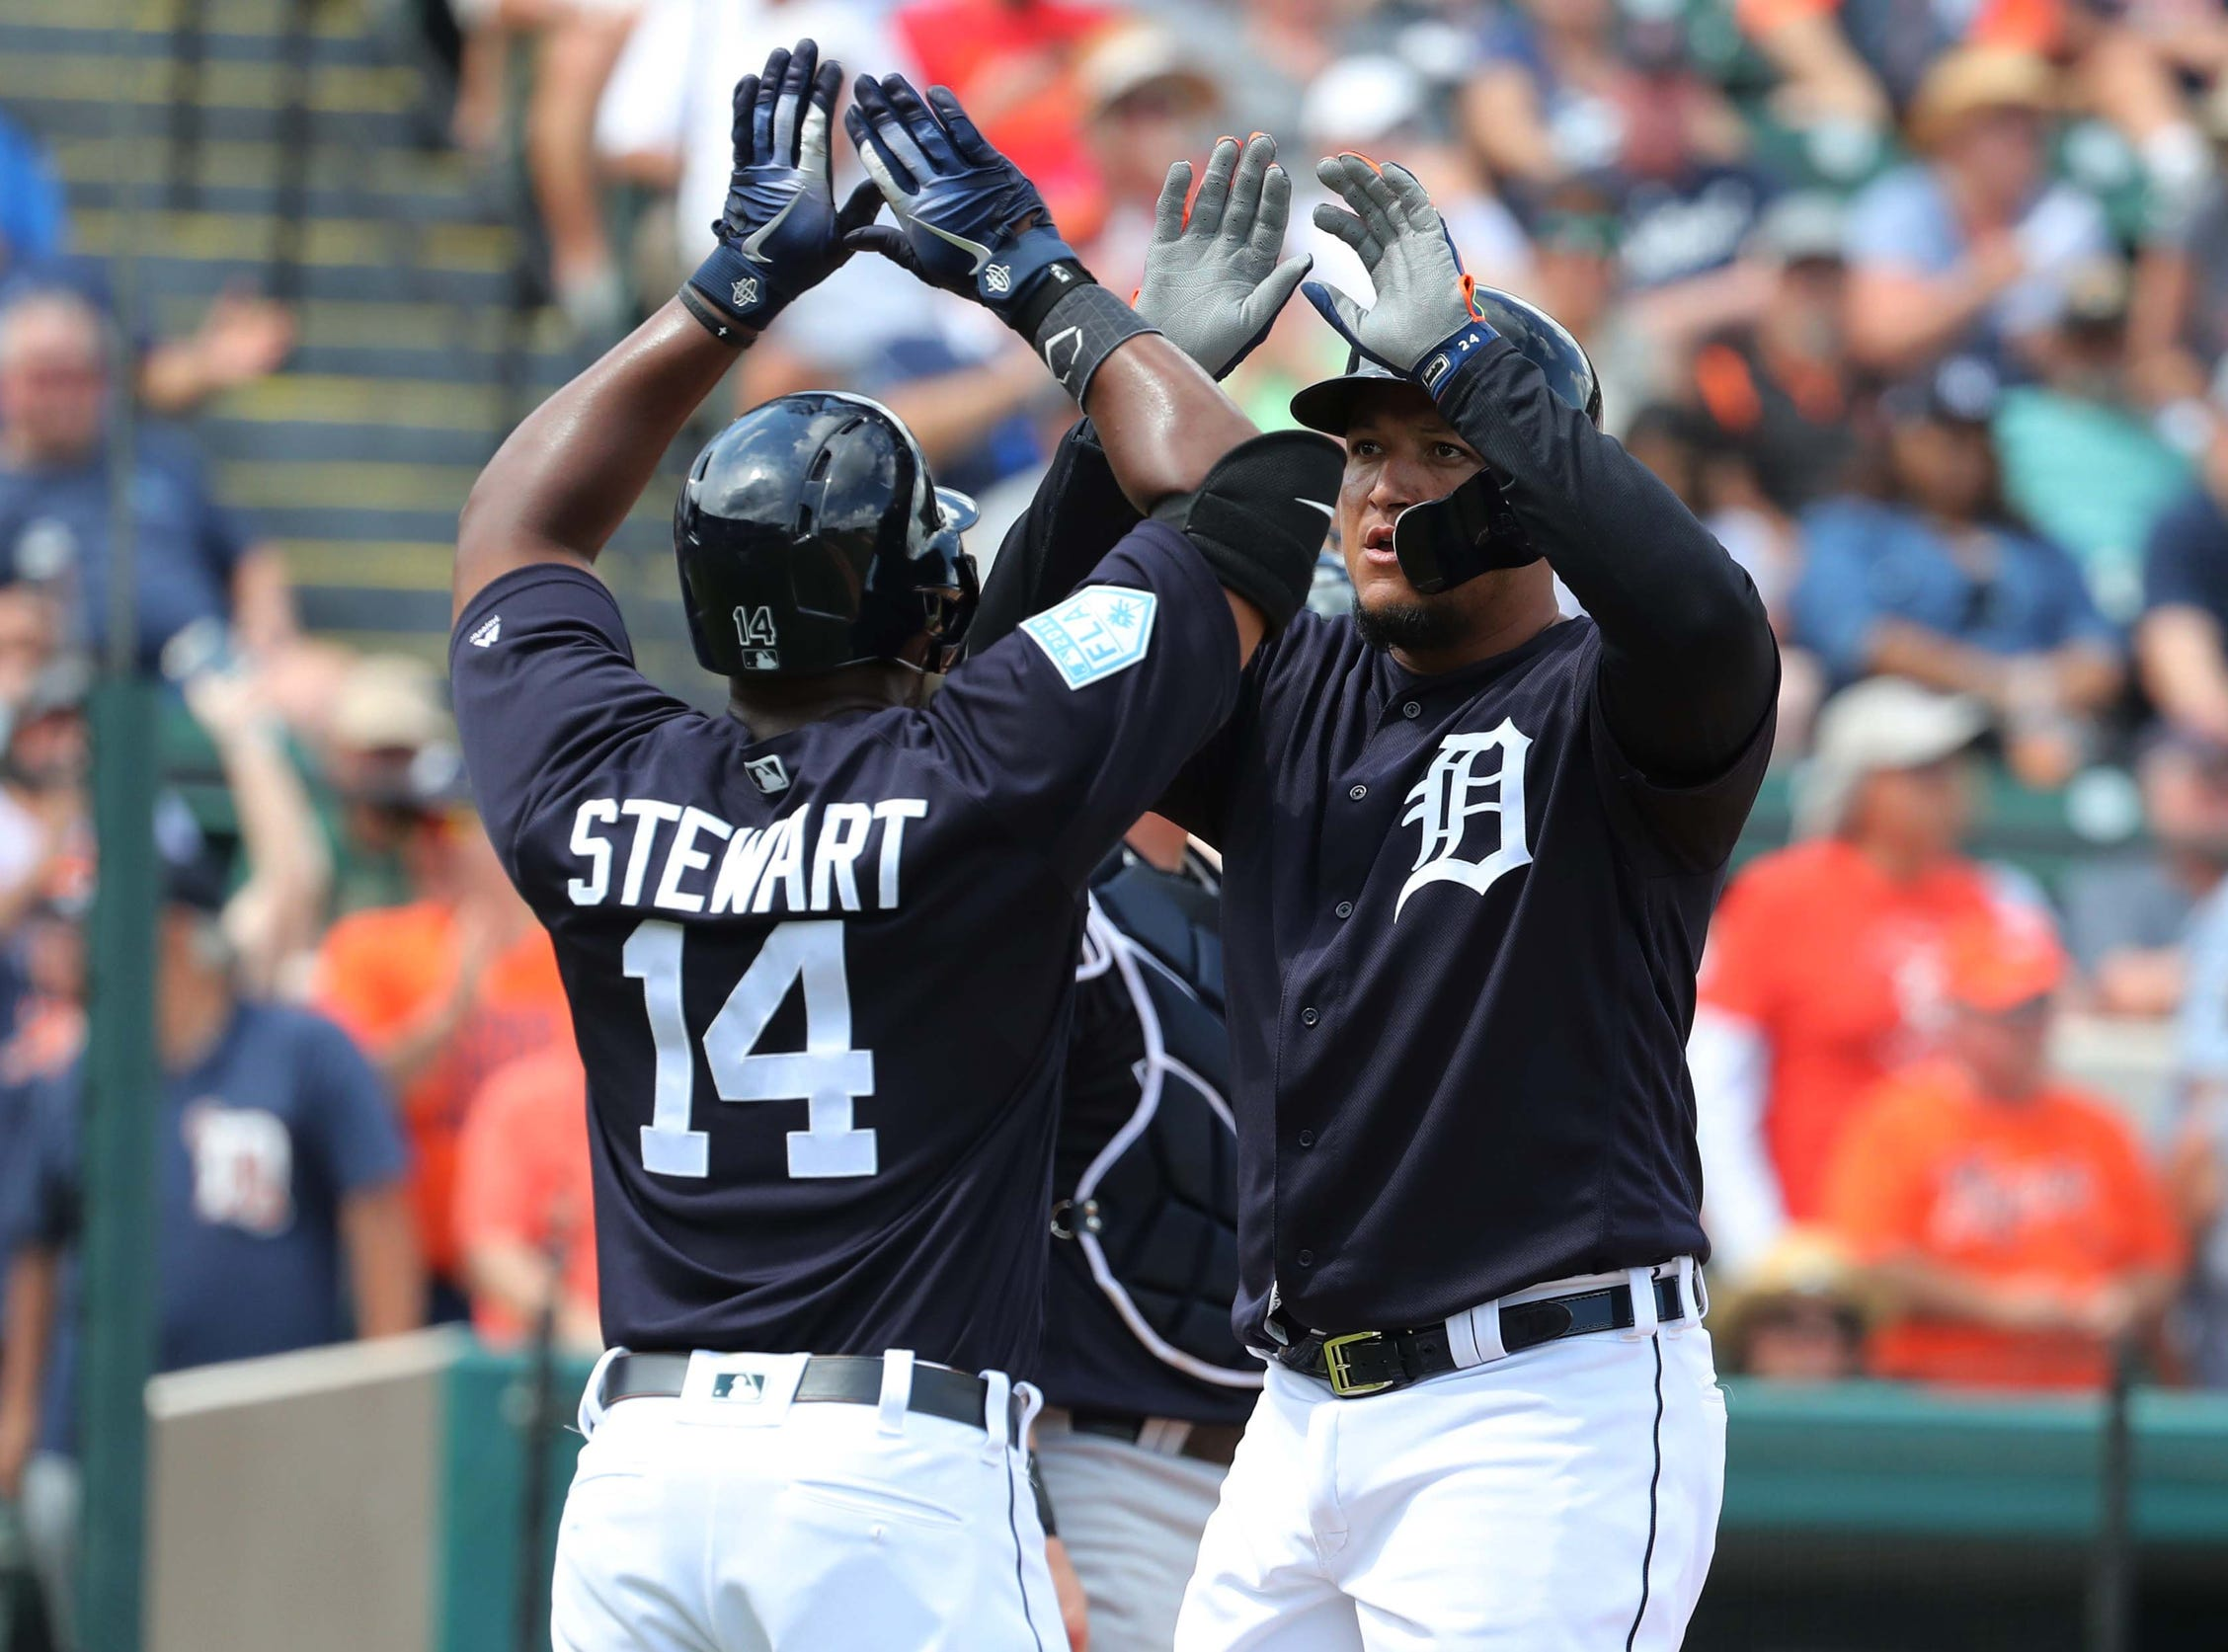 Tigers designated hitter Miguel Cabrera celebrates at home plate with left fielder Christin Stewart after his home run during the second inning in the exhibition tie against the New York Yankees on Sunday, March 10, 2019, at Joker Marchant Stadium.